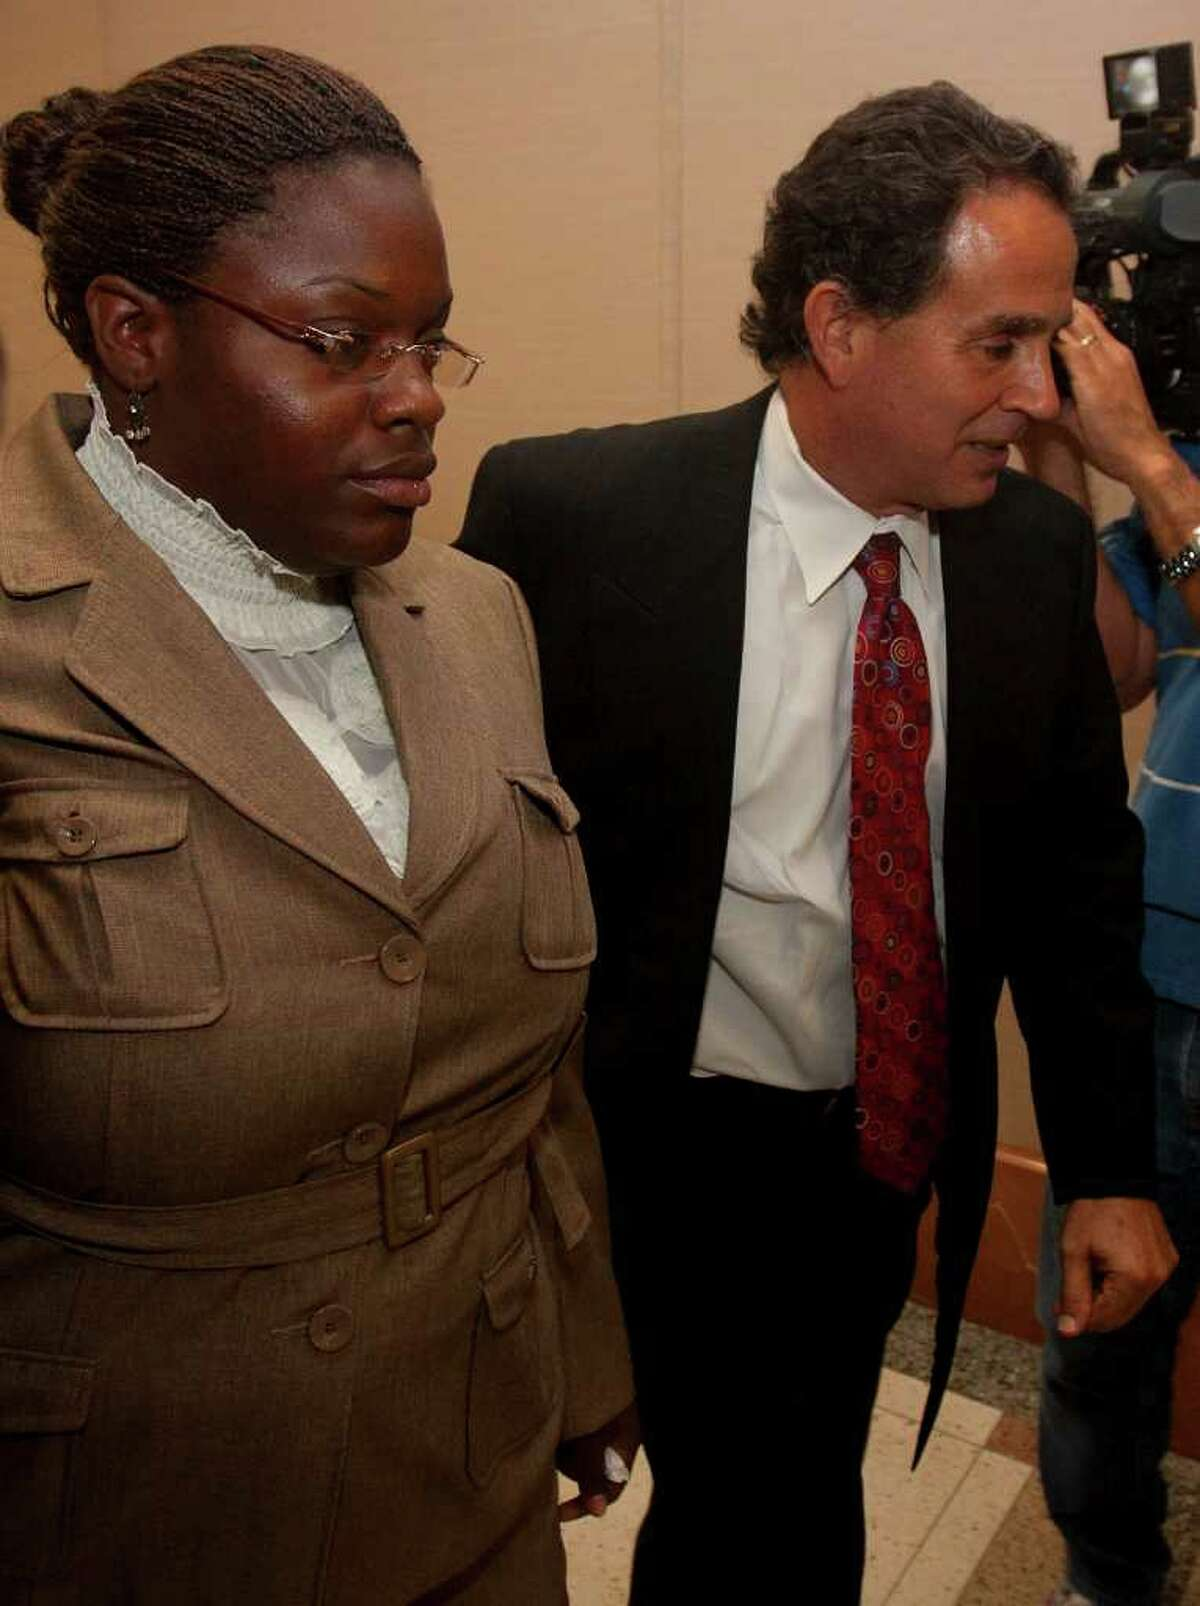 Tyonne Palmer (left) leaves the courtroom with her lawyer Anthony Osso (right) after testifying in the capital murder case of Pastor Tracy Bernard